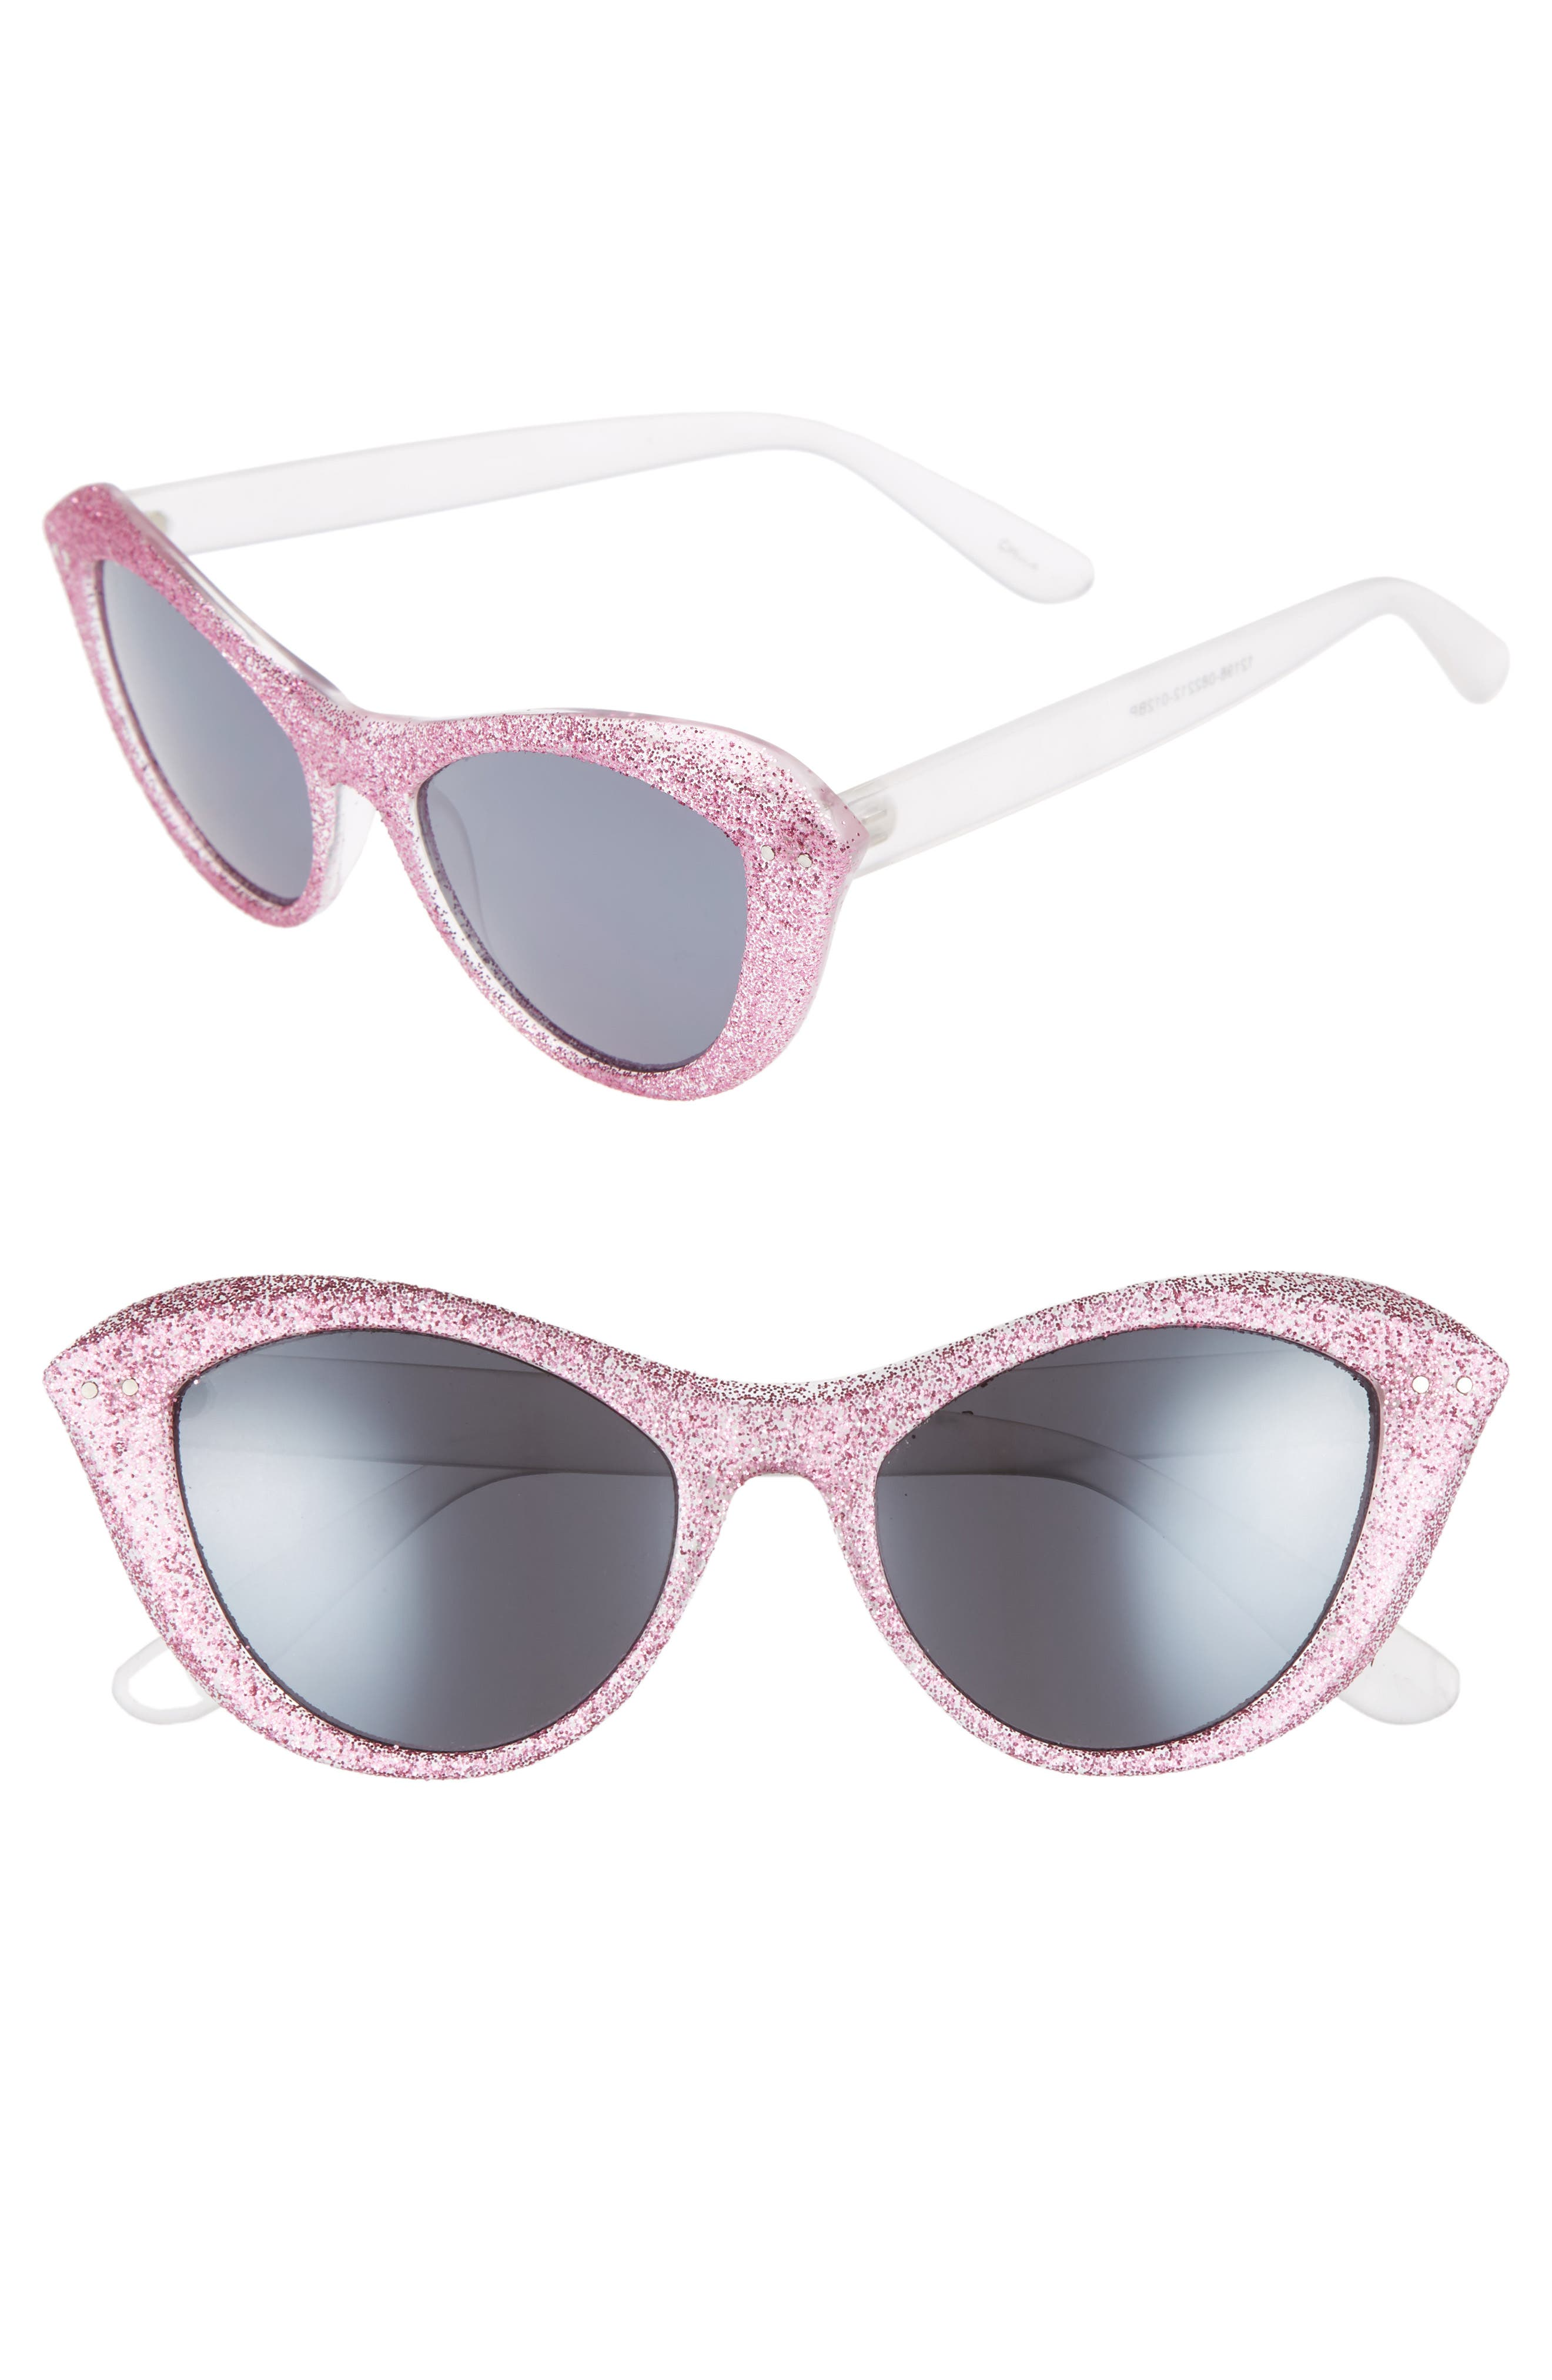 50mm Retro Cat Eye Sunglasses,                             Main thumbnail 1, color,                             100